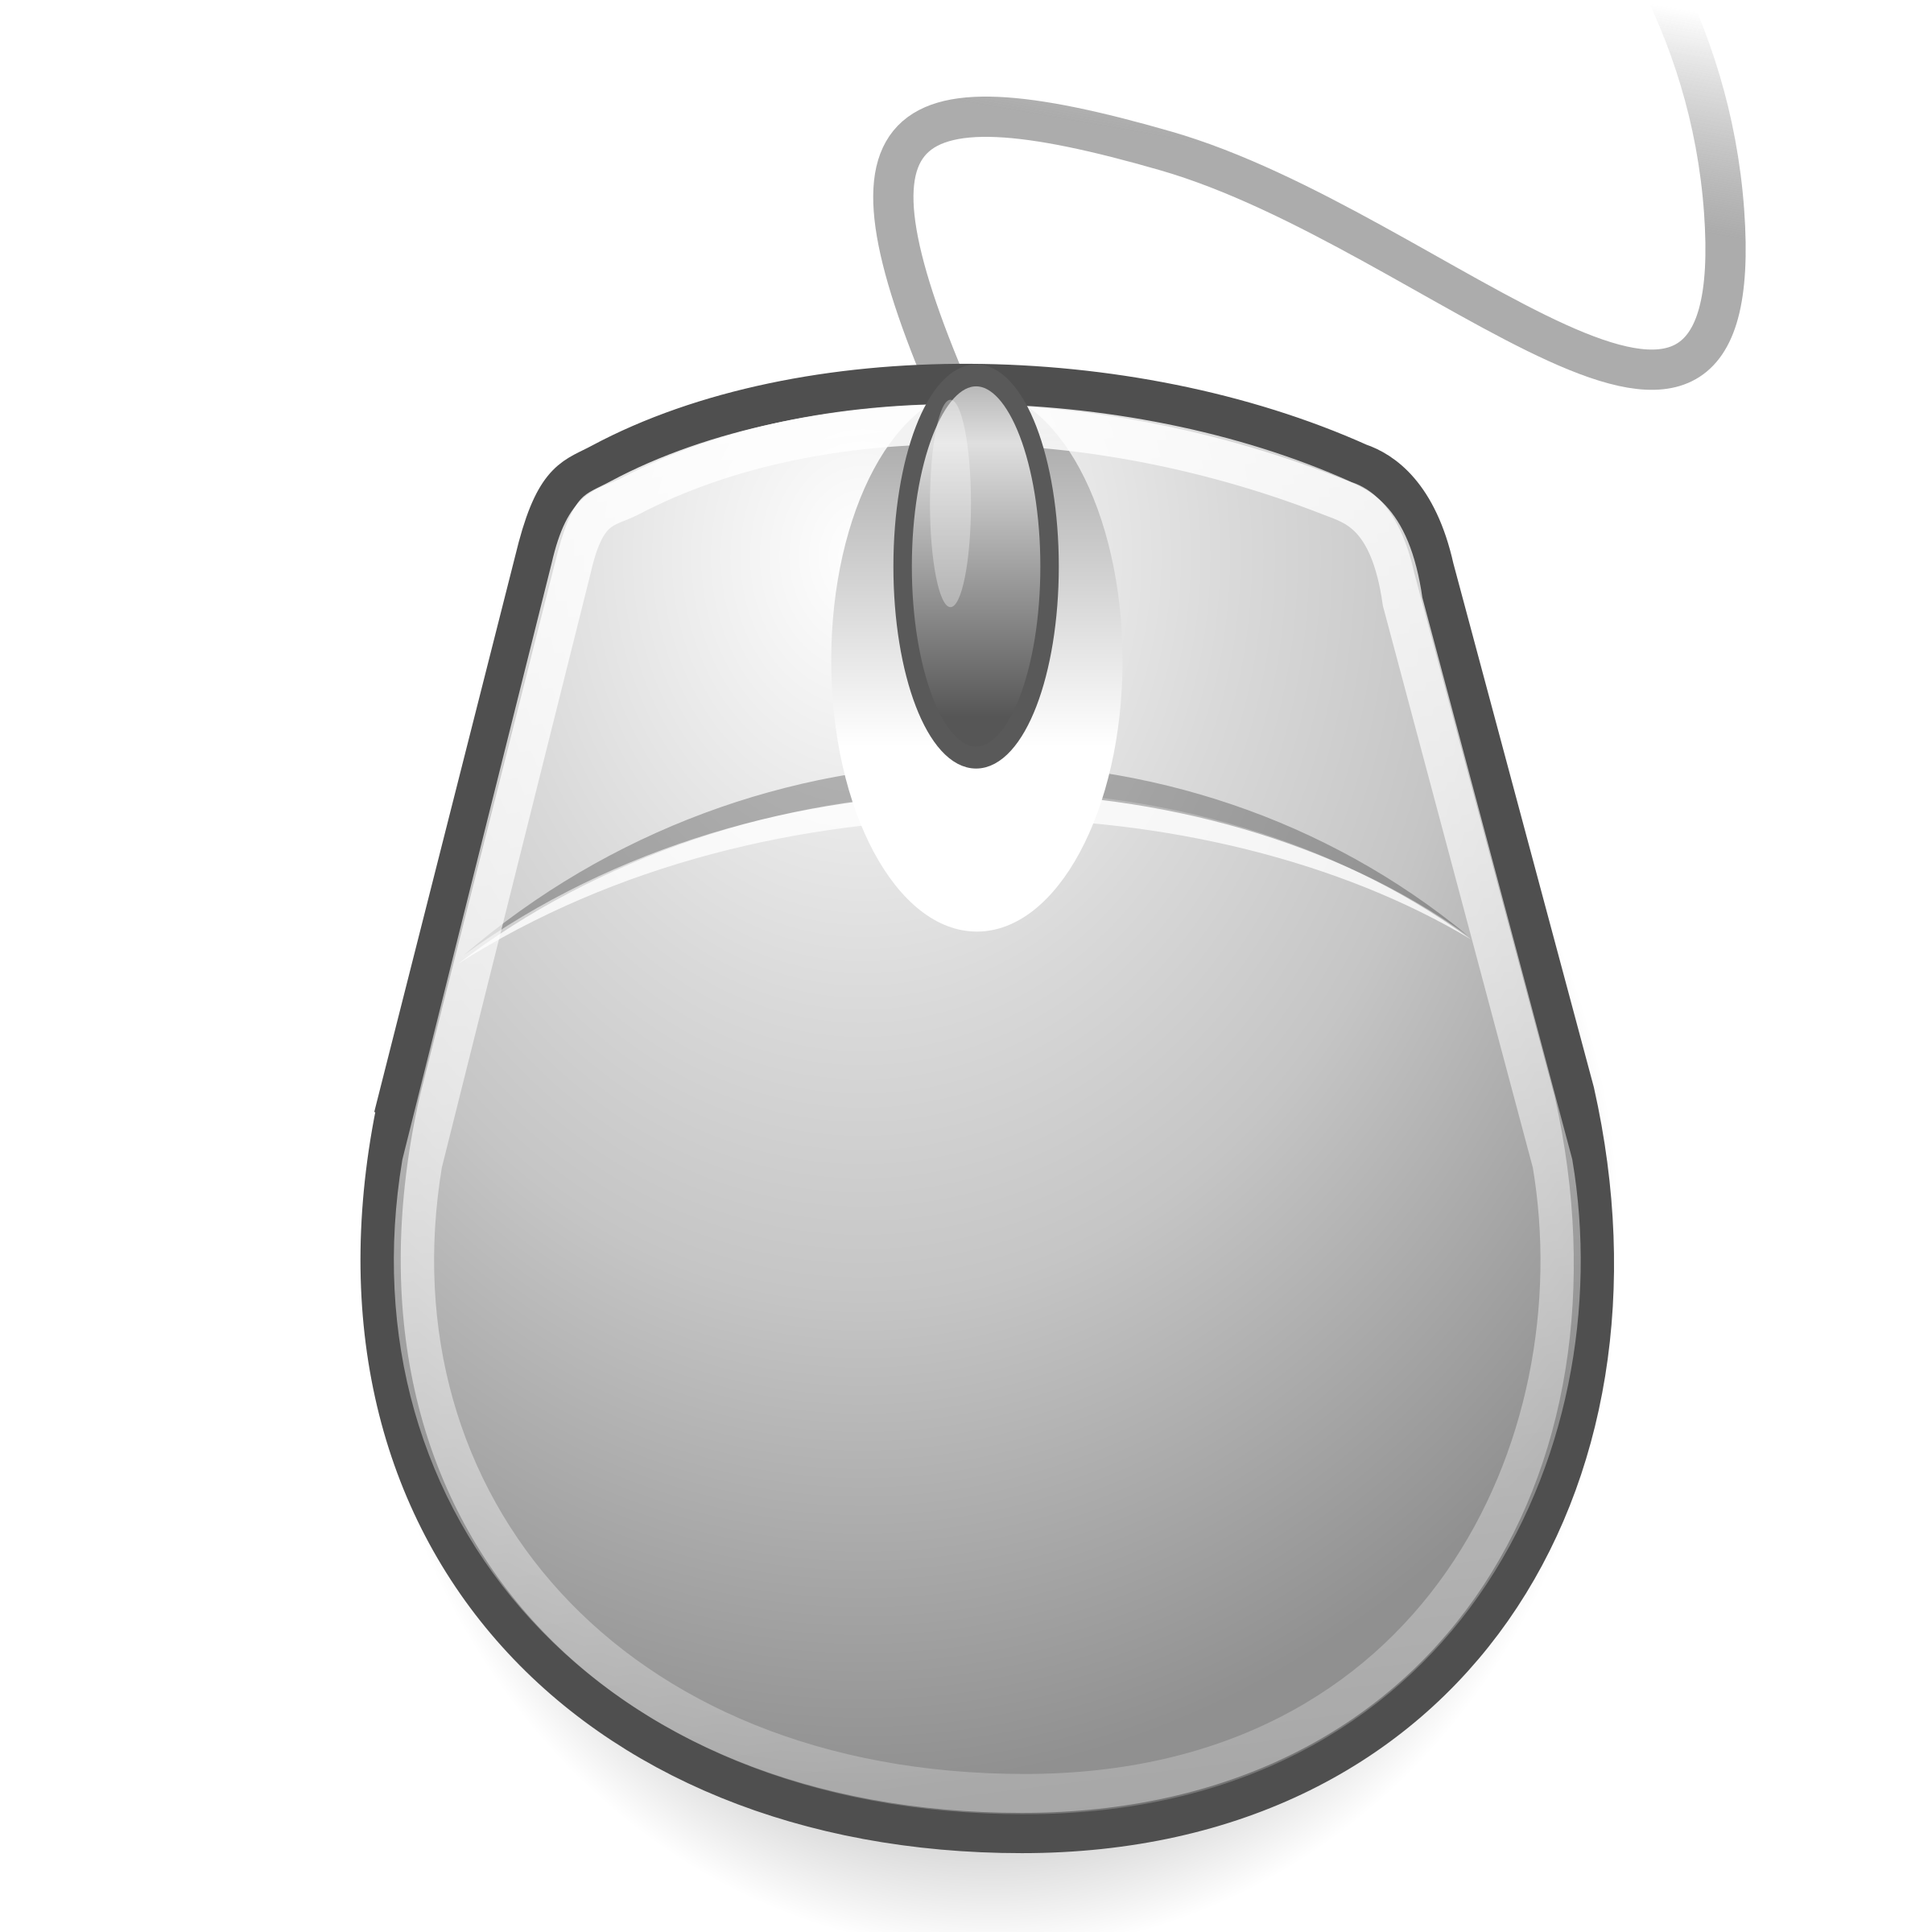 Mouse png. Transparent pictures free icons